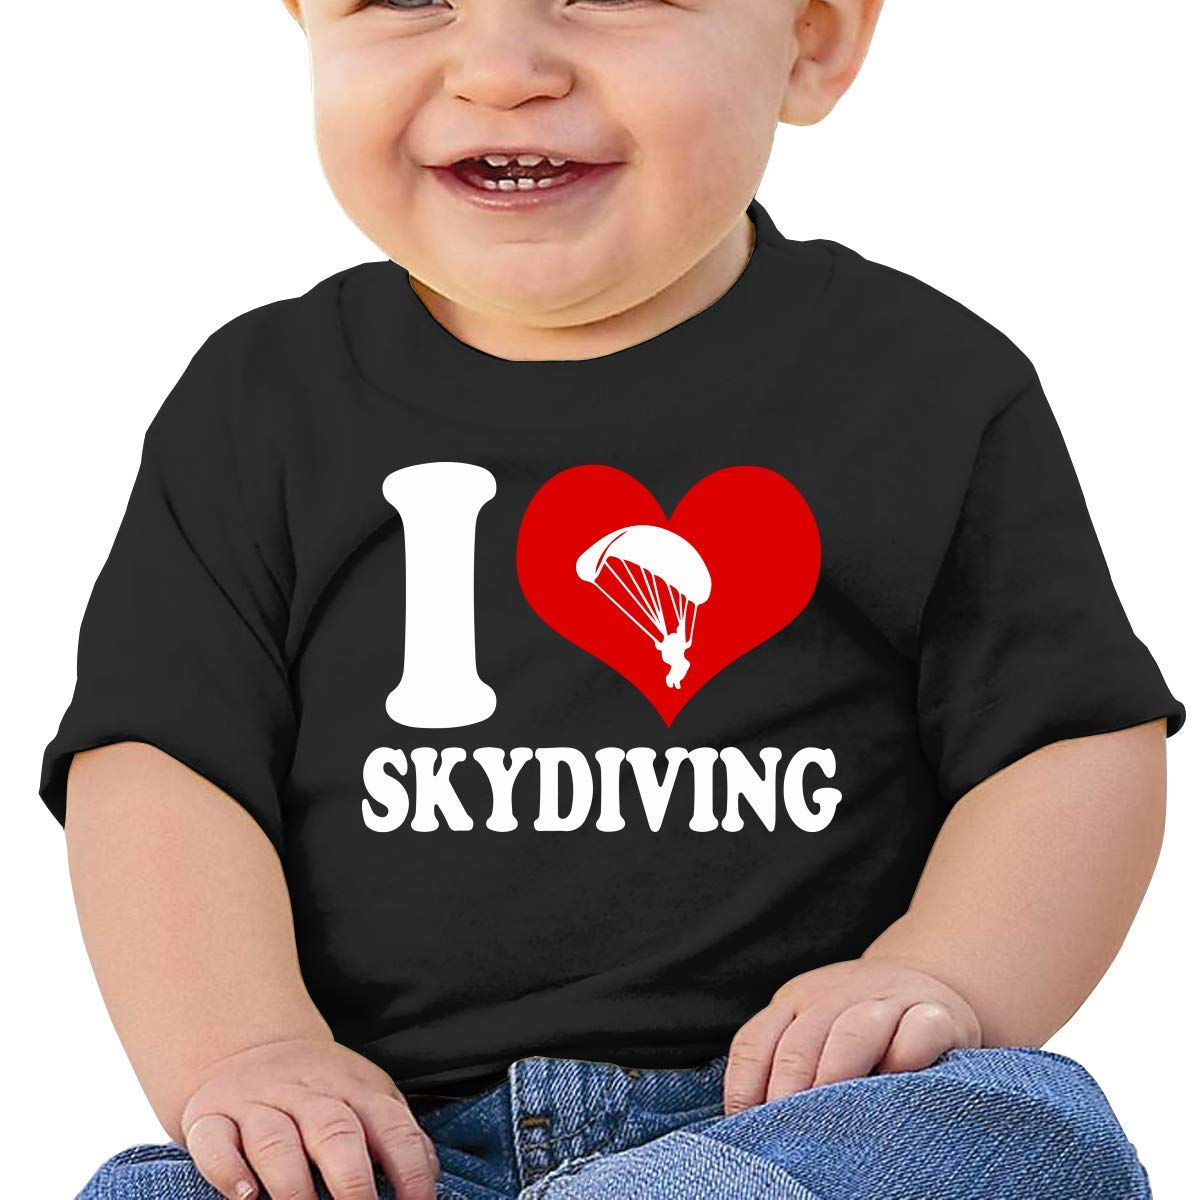 Skydiving Love Skydiving Skydive Baby Boy Newborn Short Sleeve T Shirts 6-24 Month Soft Tops